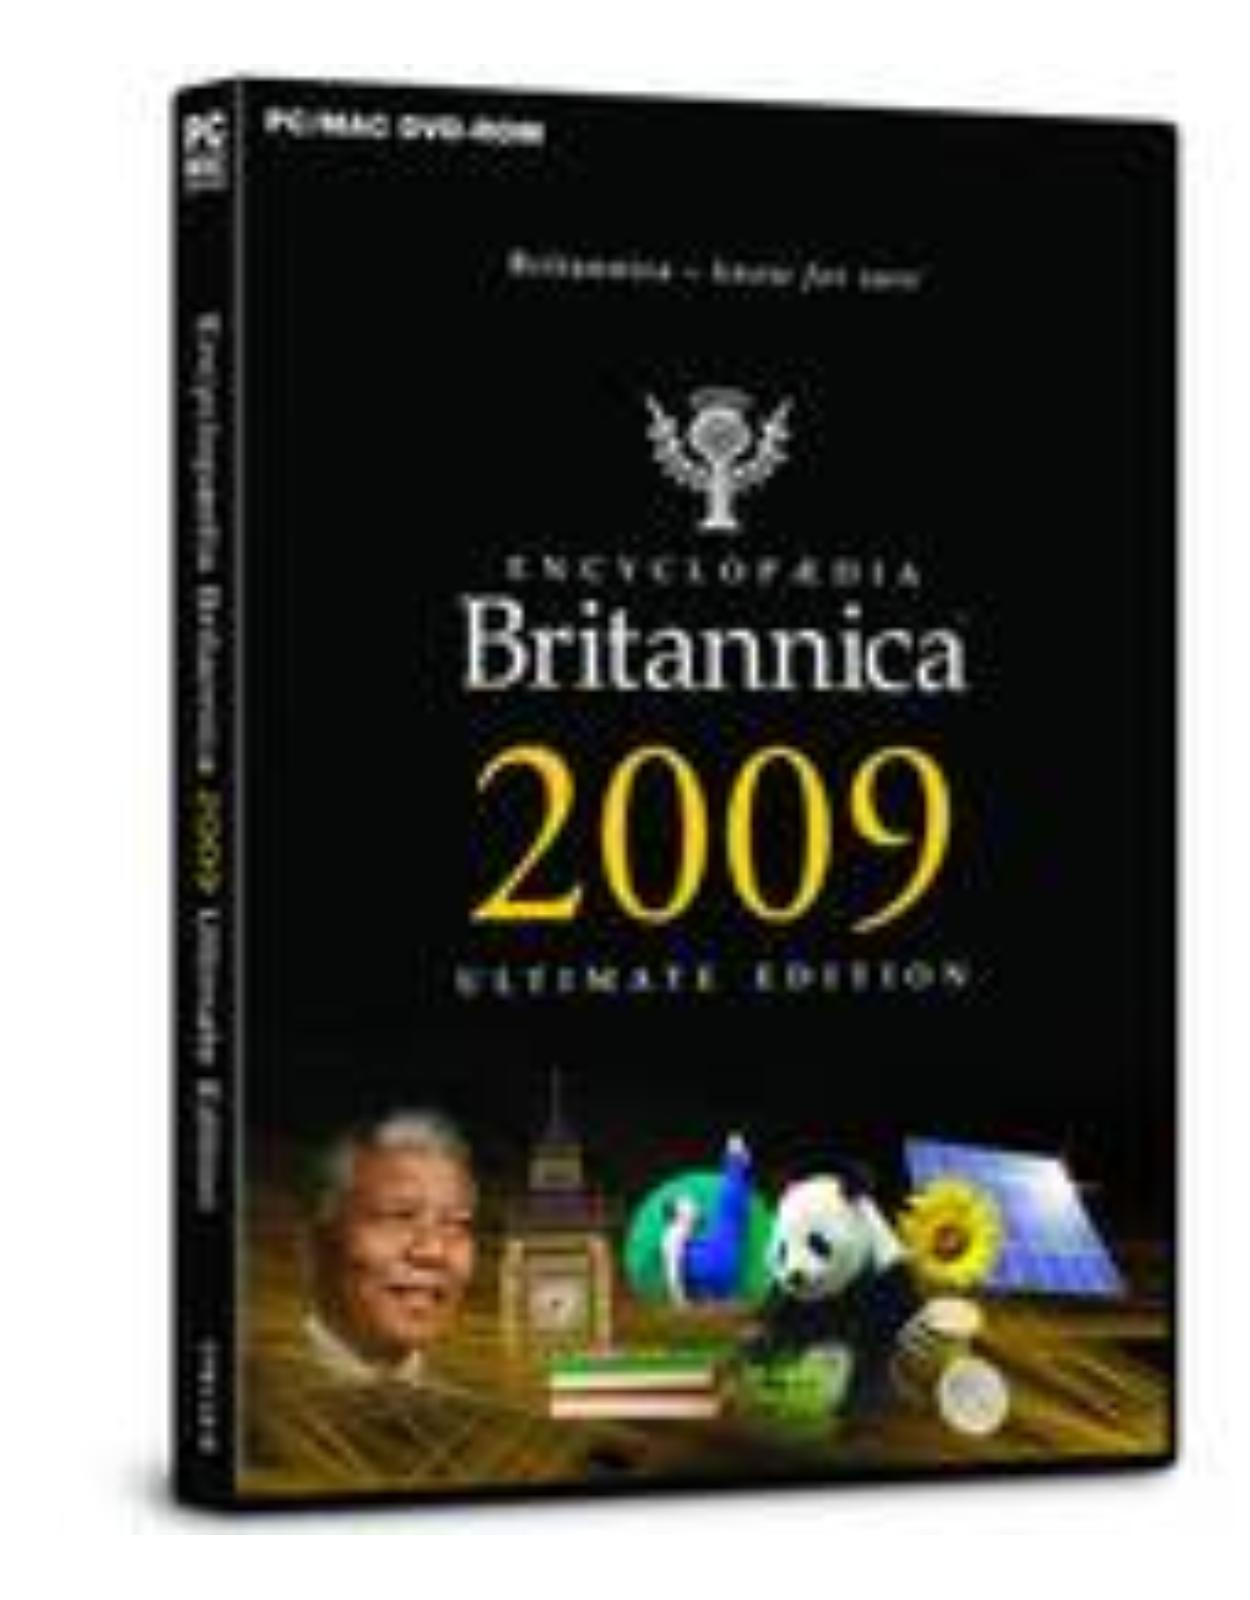 Encyclopaedia Britannica 2009 Ultimate Reference DVD